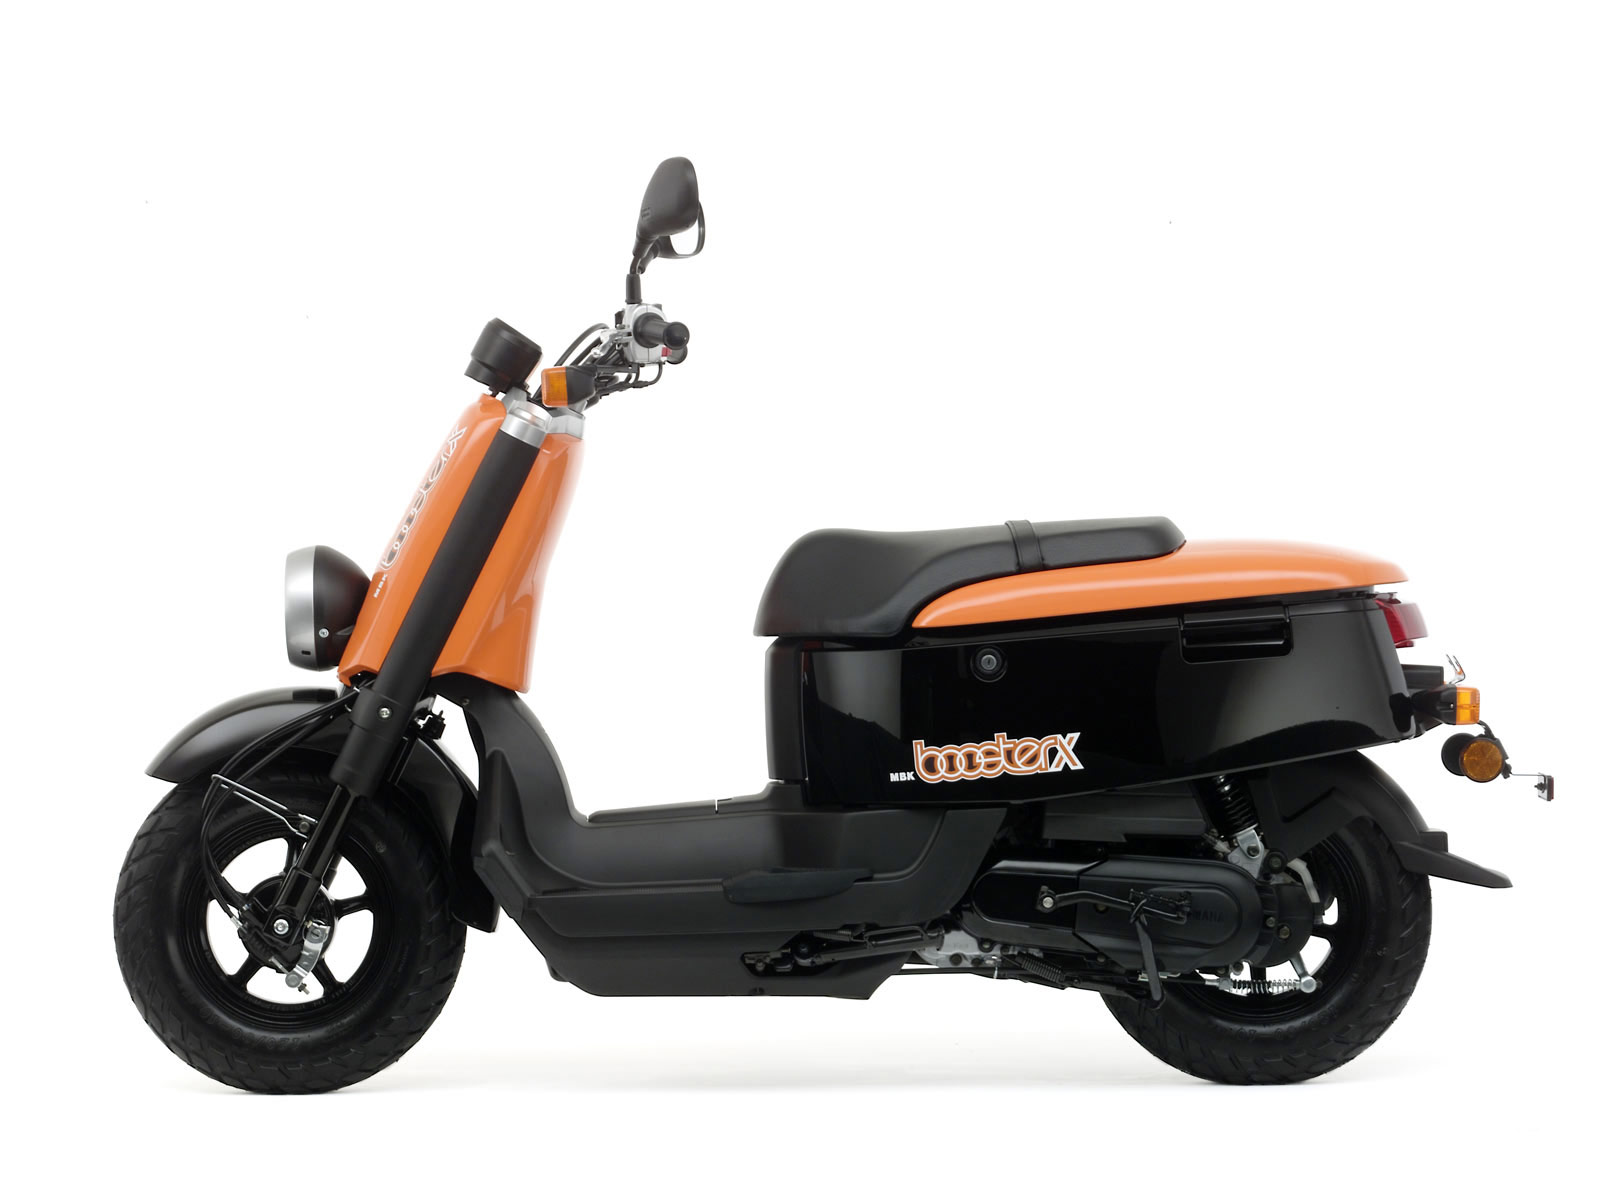 2009 mbk booster x scooter pictures insurance information. Black Bedroom Furniture Sets. Home Design Ideas